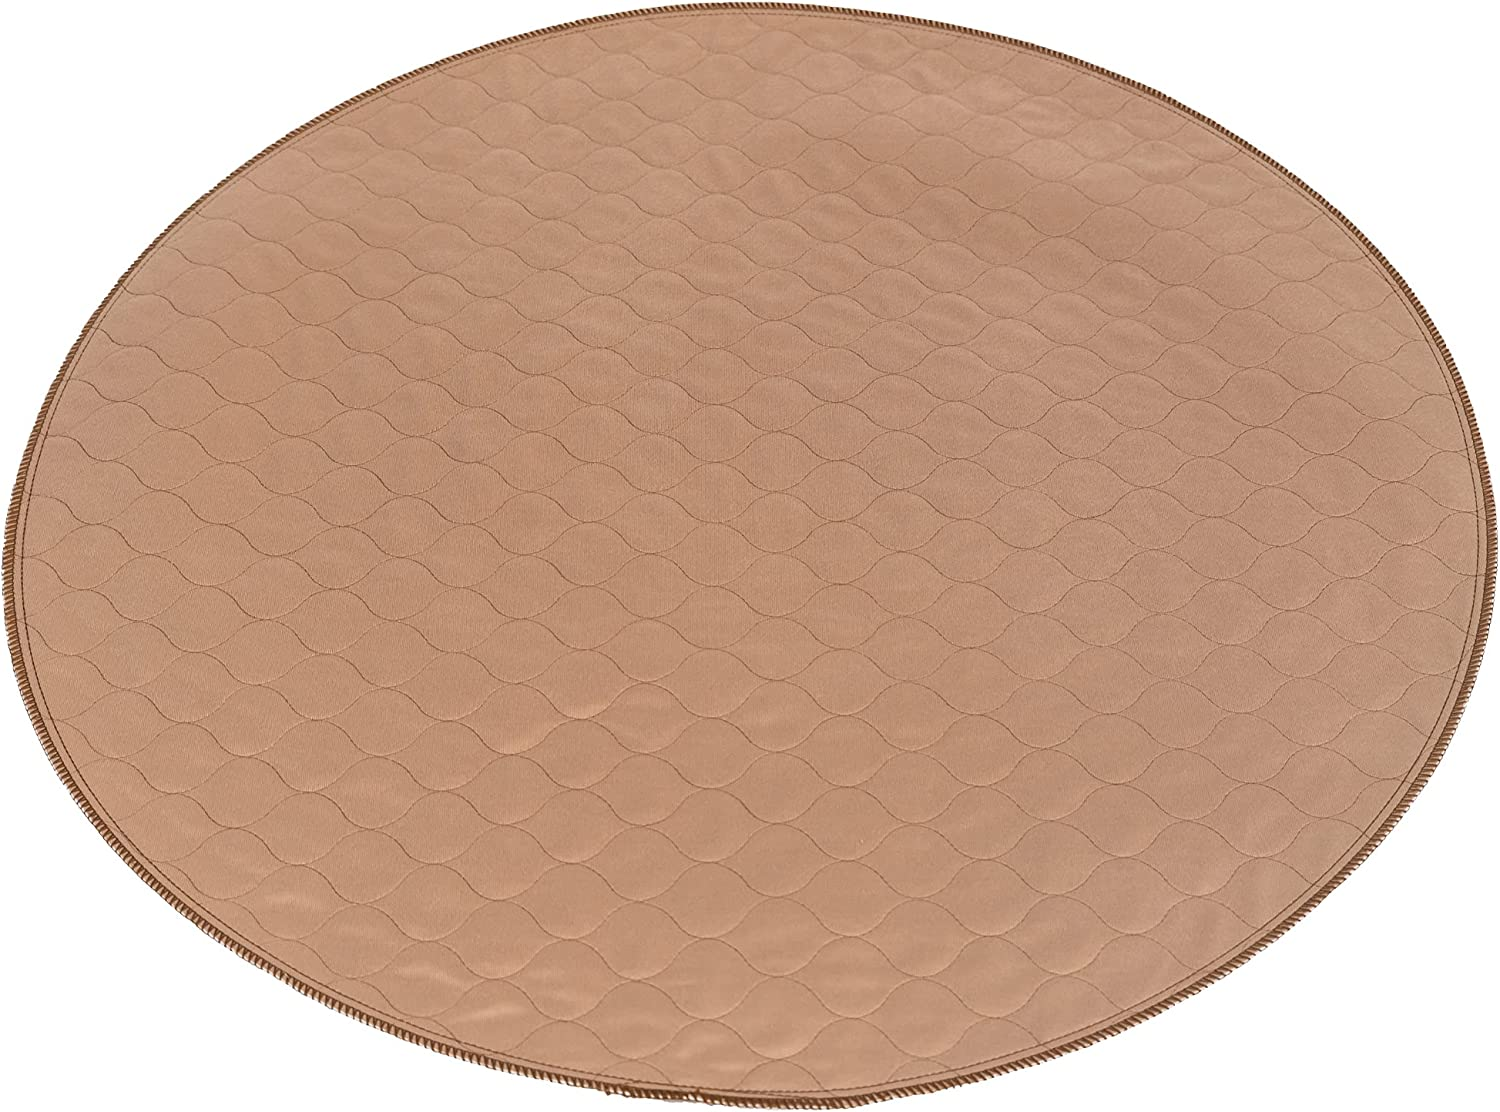 EZwhelp Pee New product!! Pads for Dogs Popular brand in the world - Puppy Round 48